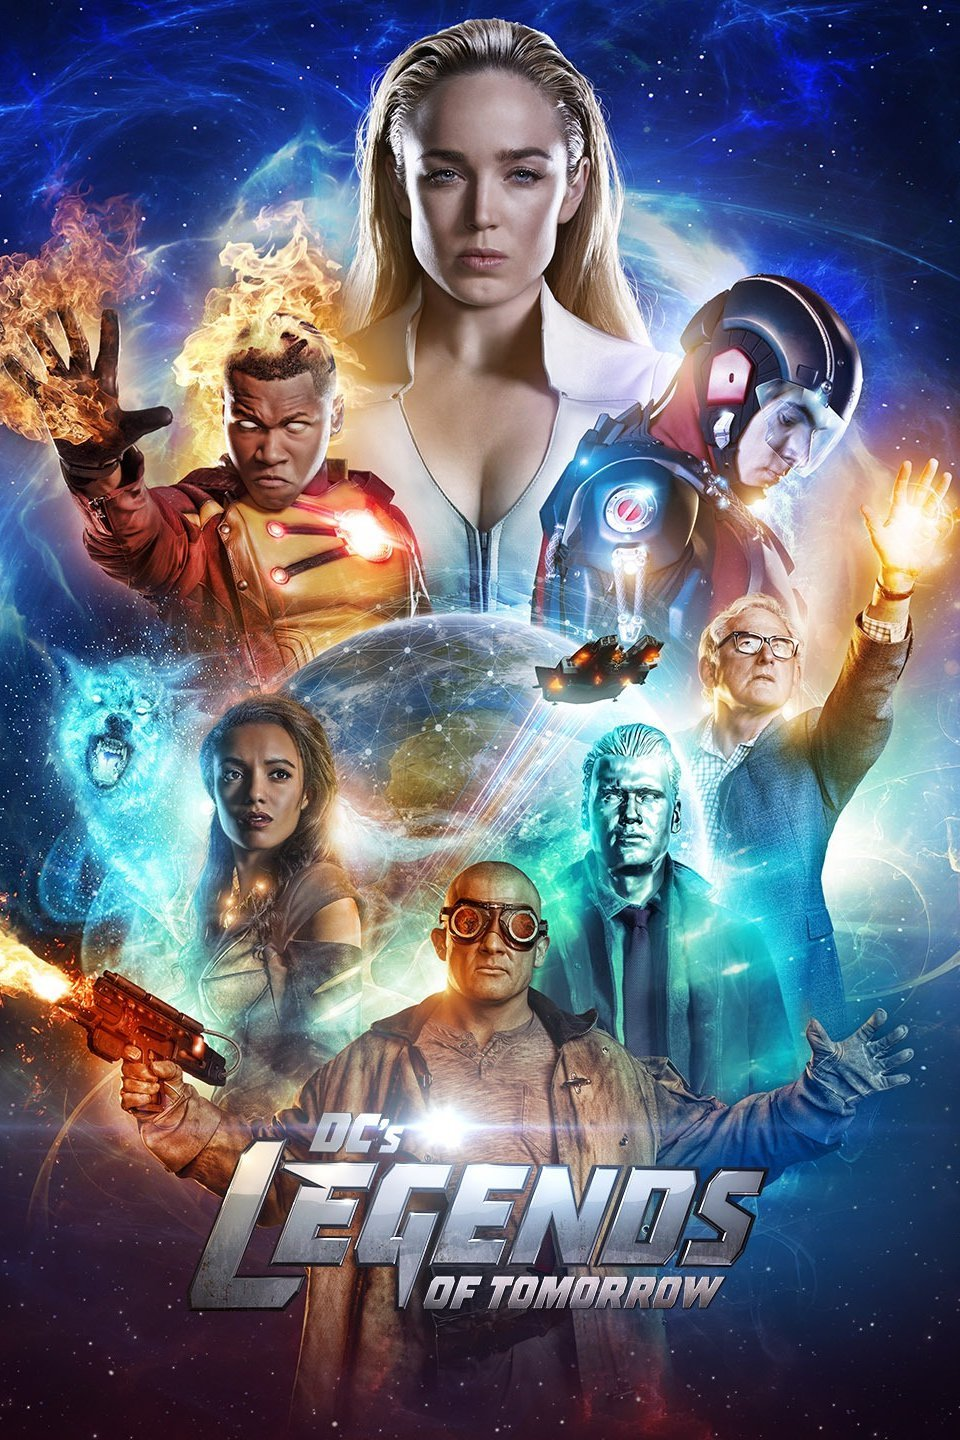 Legends of Tomorrow Season 3 Episode 15 Download HDTV 480p 720p